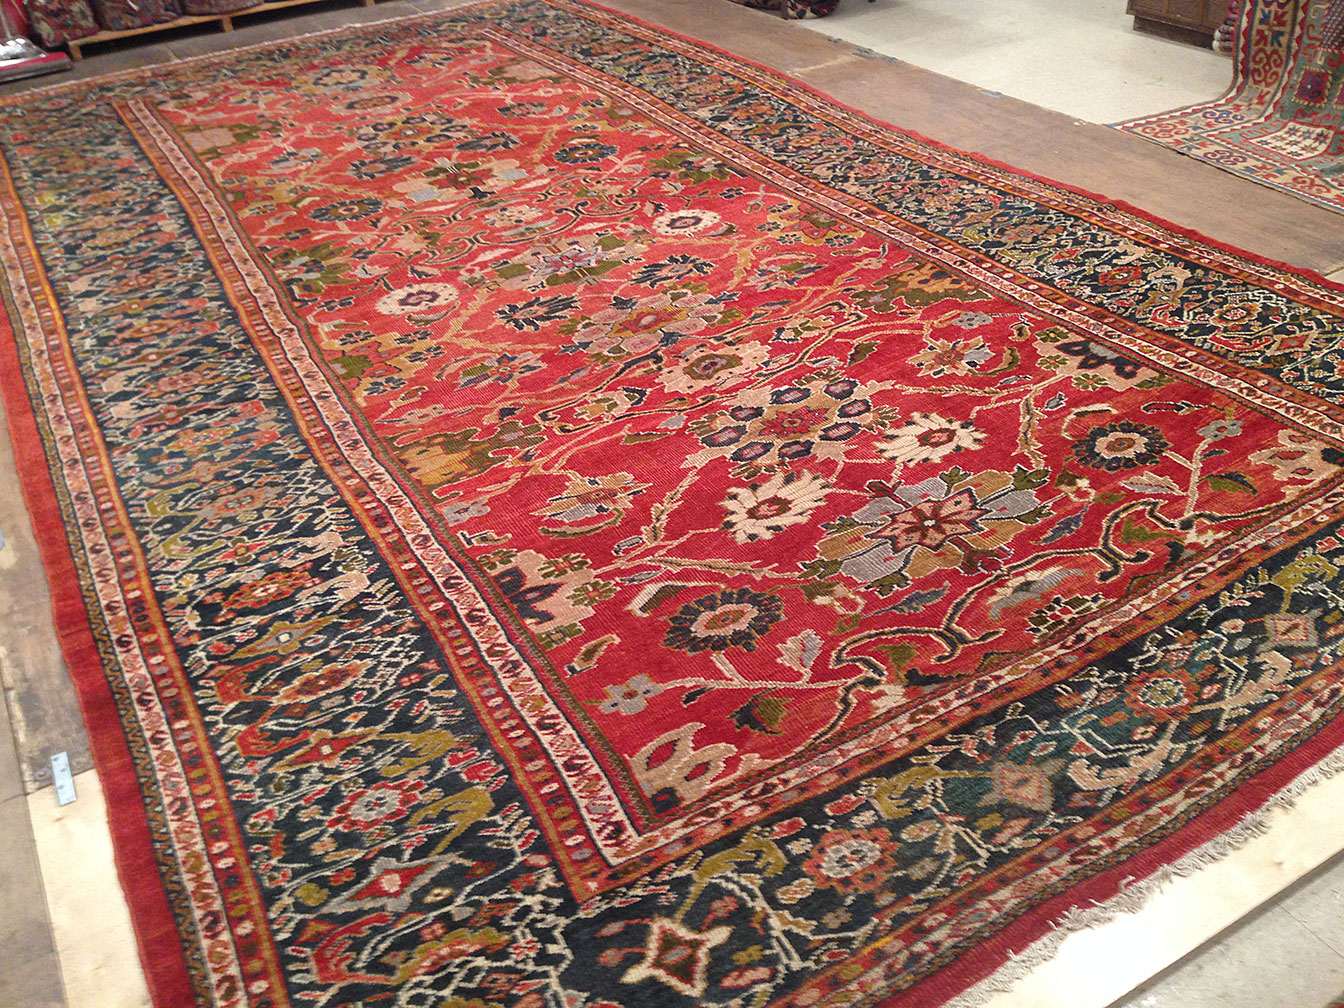 Antique sultan abad Carpet - # 50307